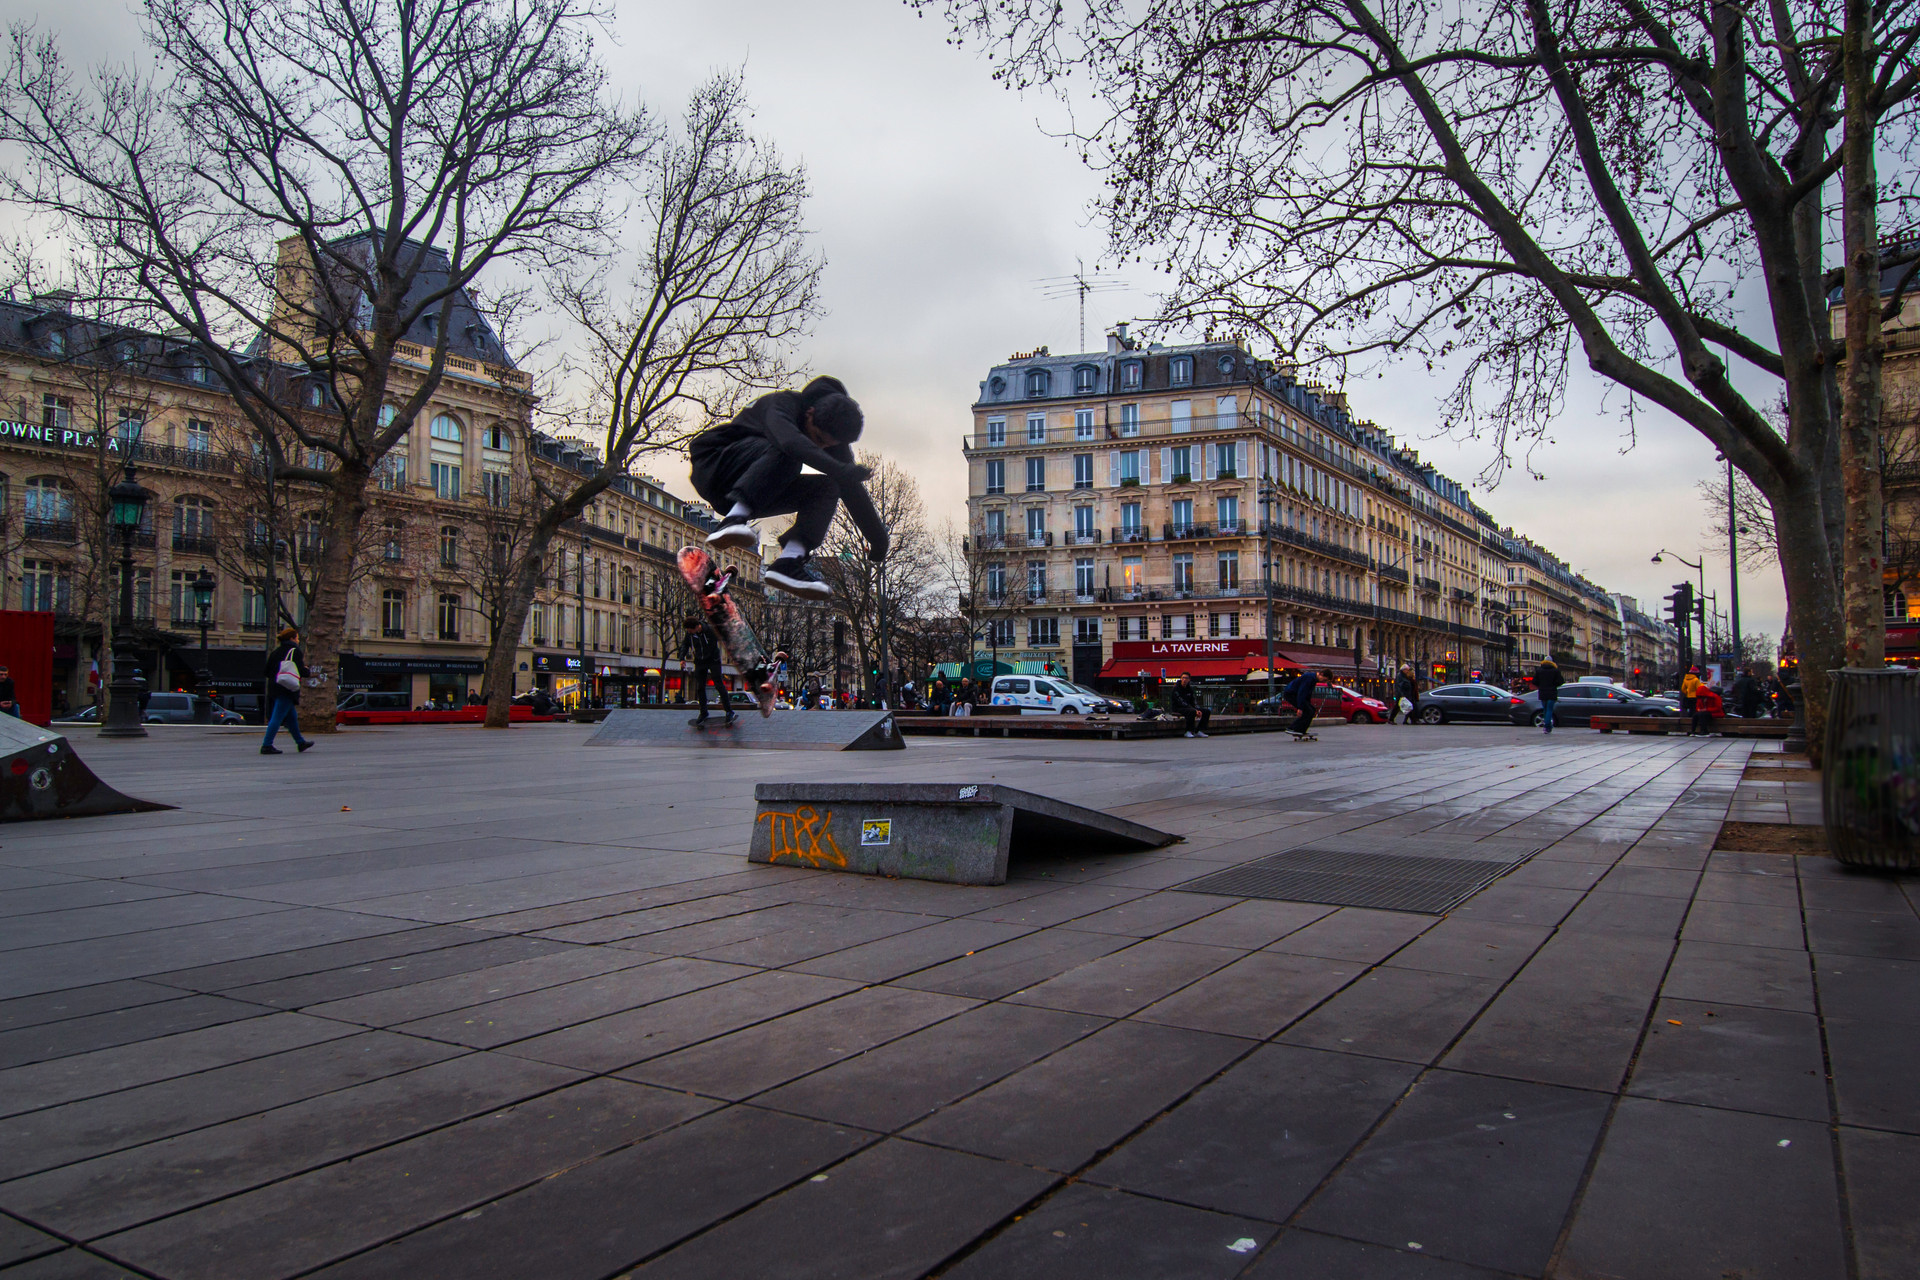 Skateboarder Paris